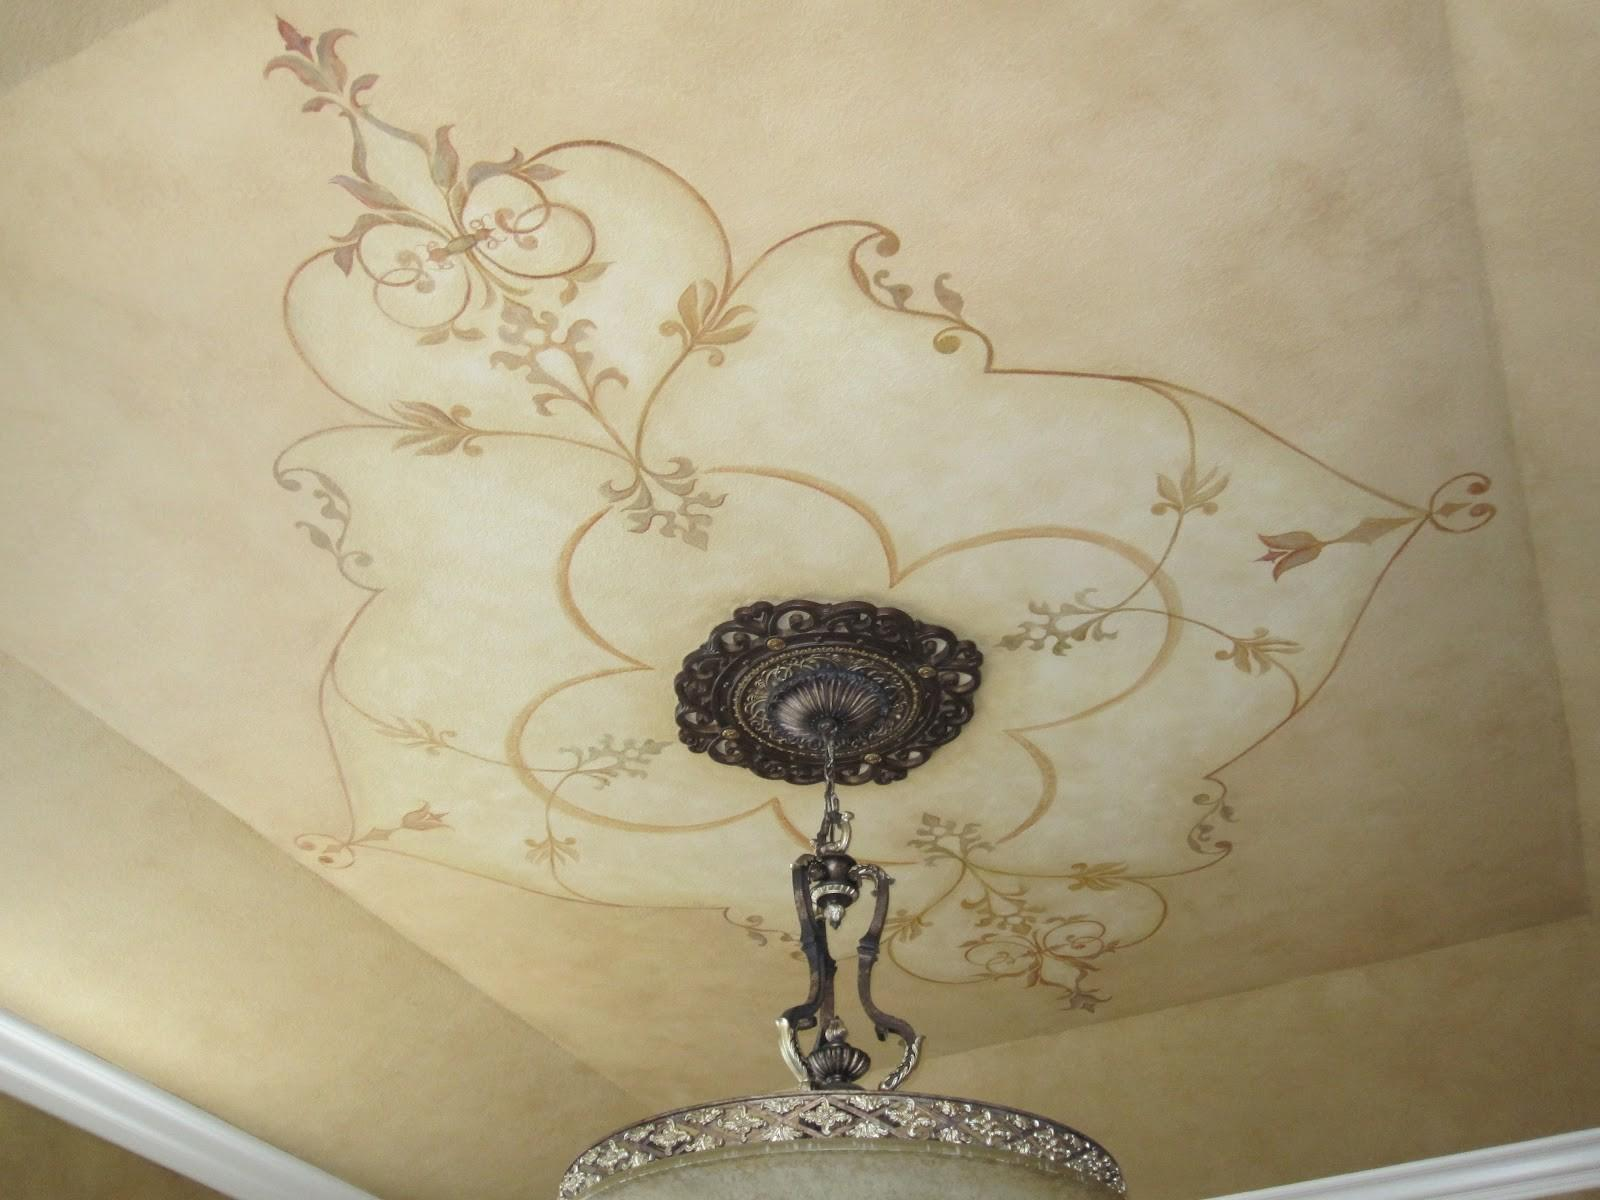 Stormer Decorative Finishes Ceiling Mural